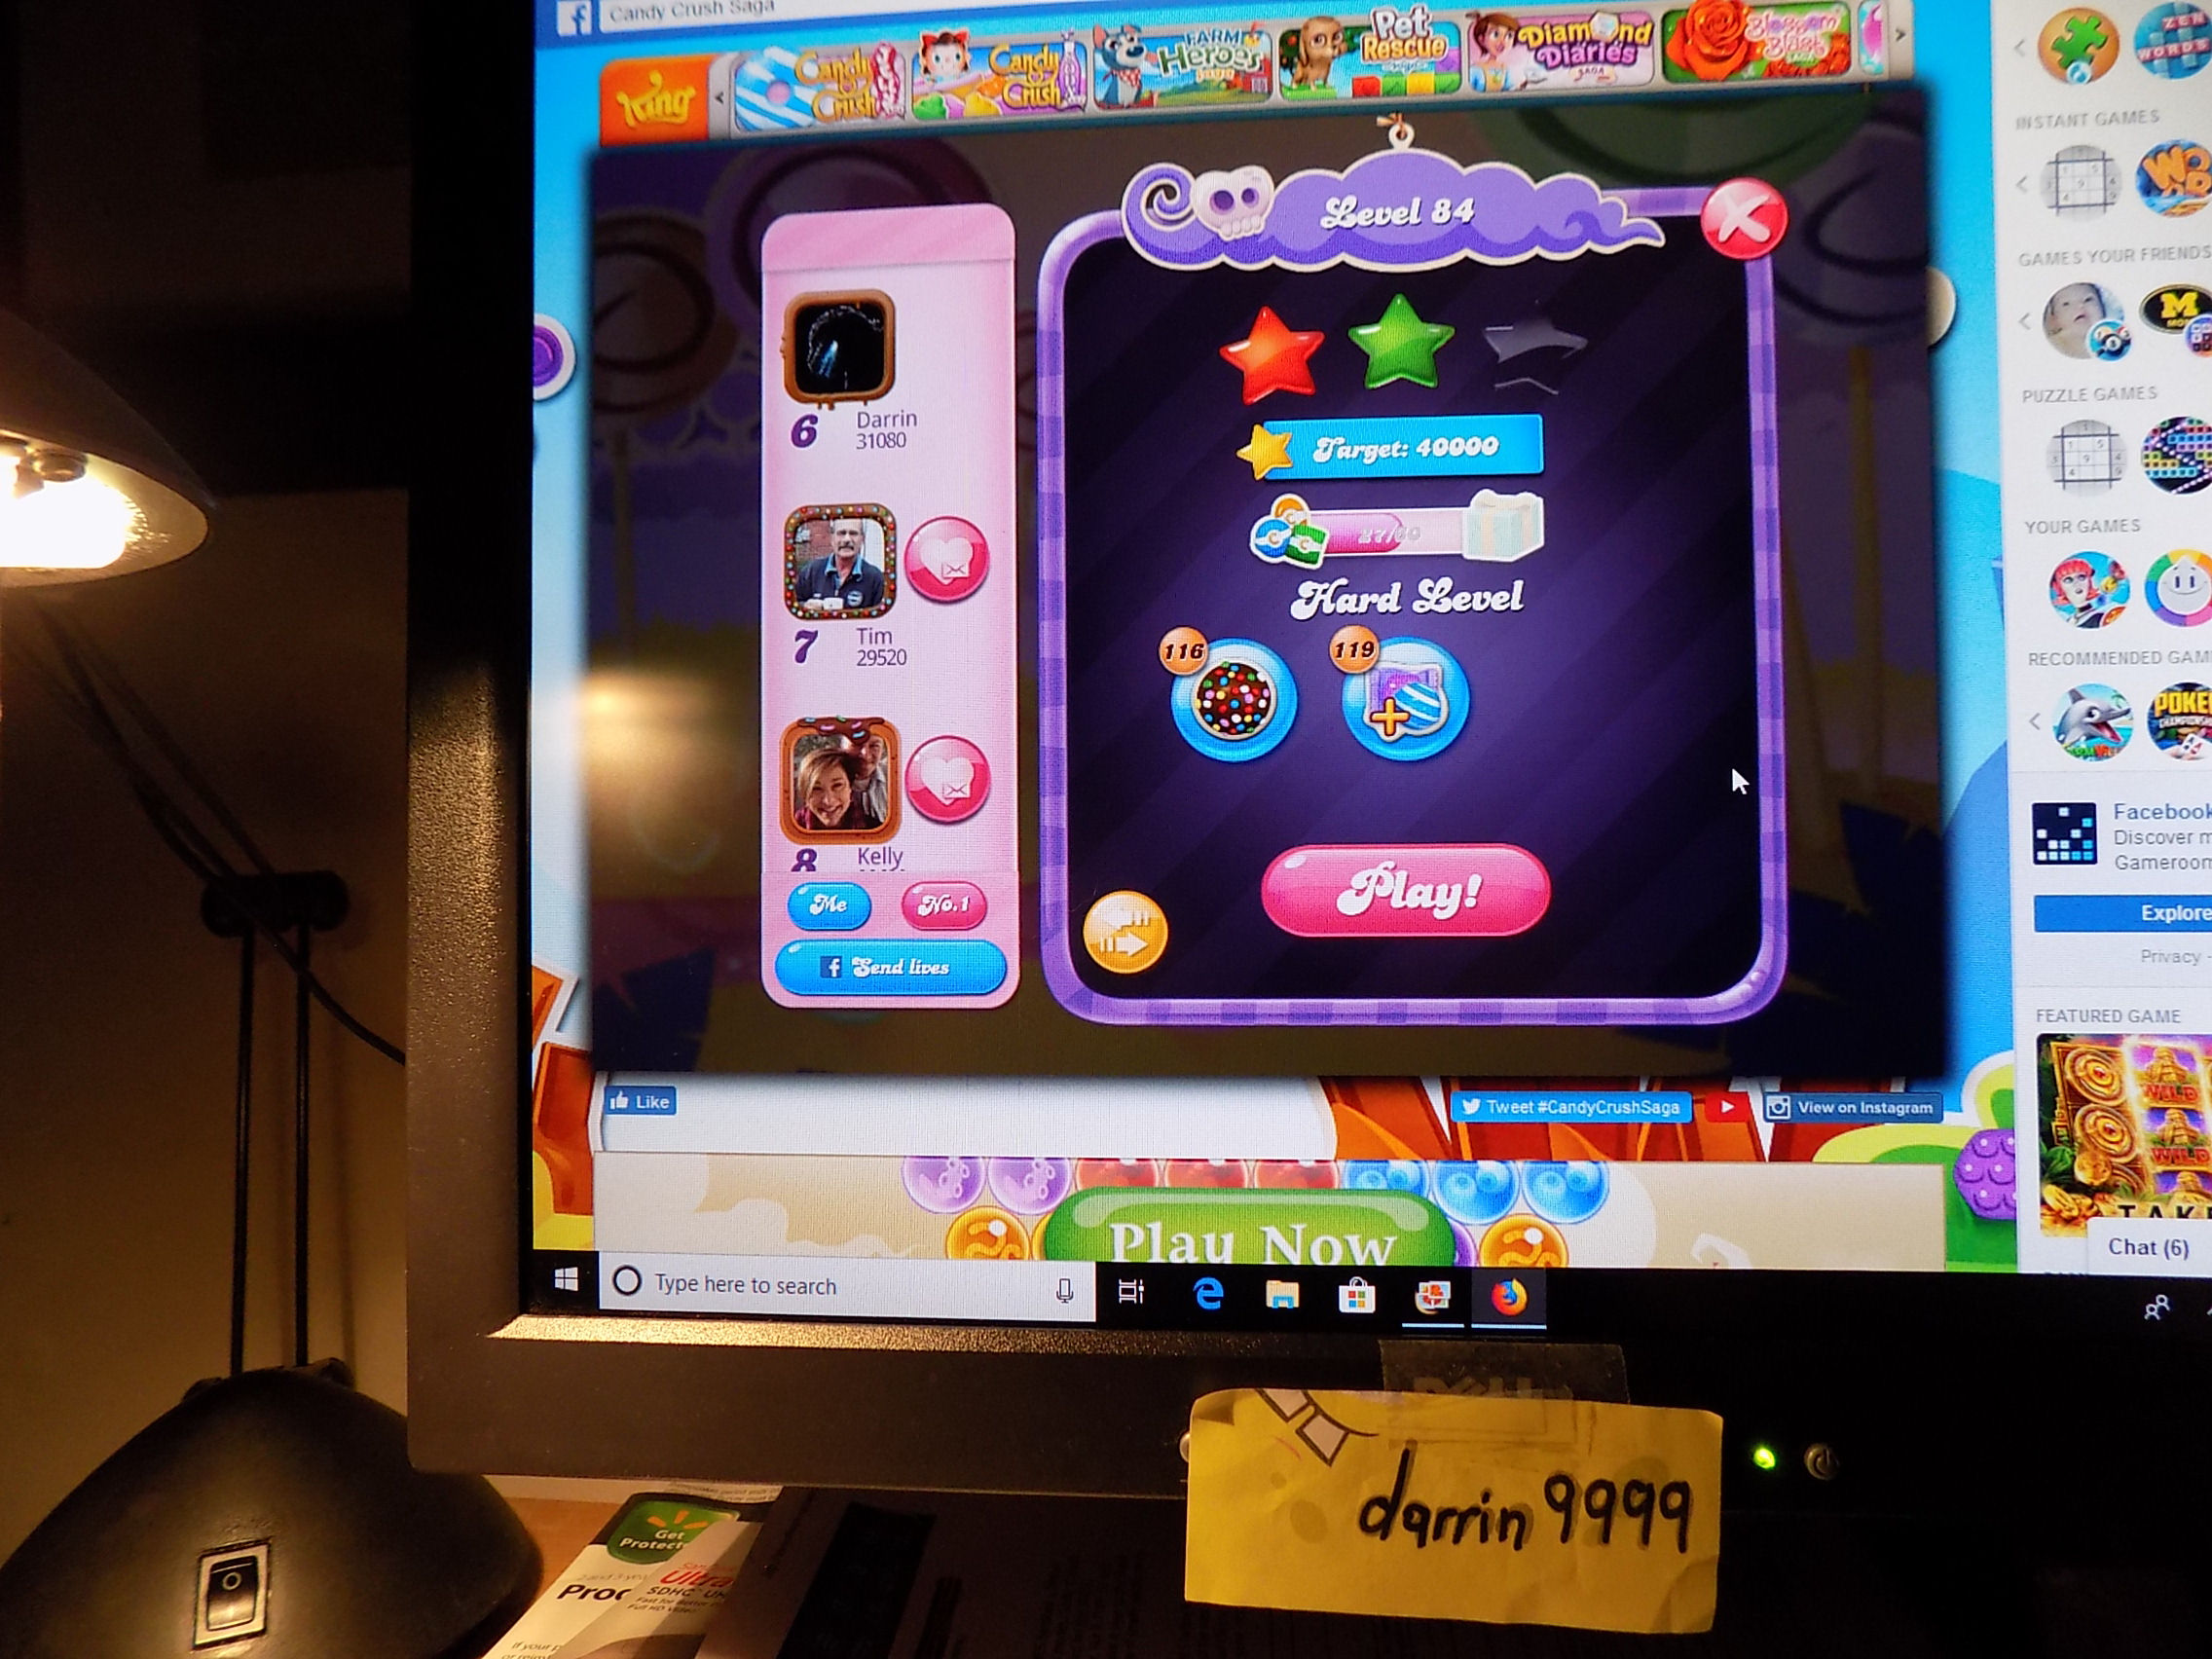 darrin9999: Candy Crush Saga: Level 084 (Web) 31,080 points on 2019-06-13 17:54:01